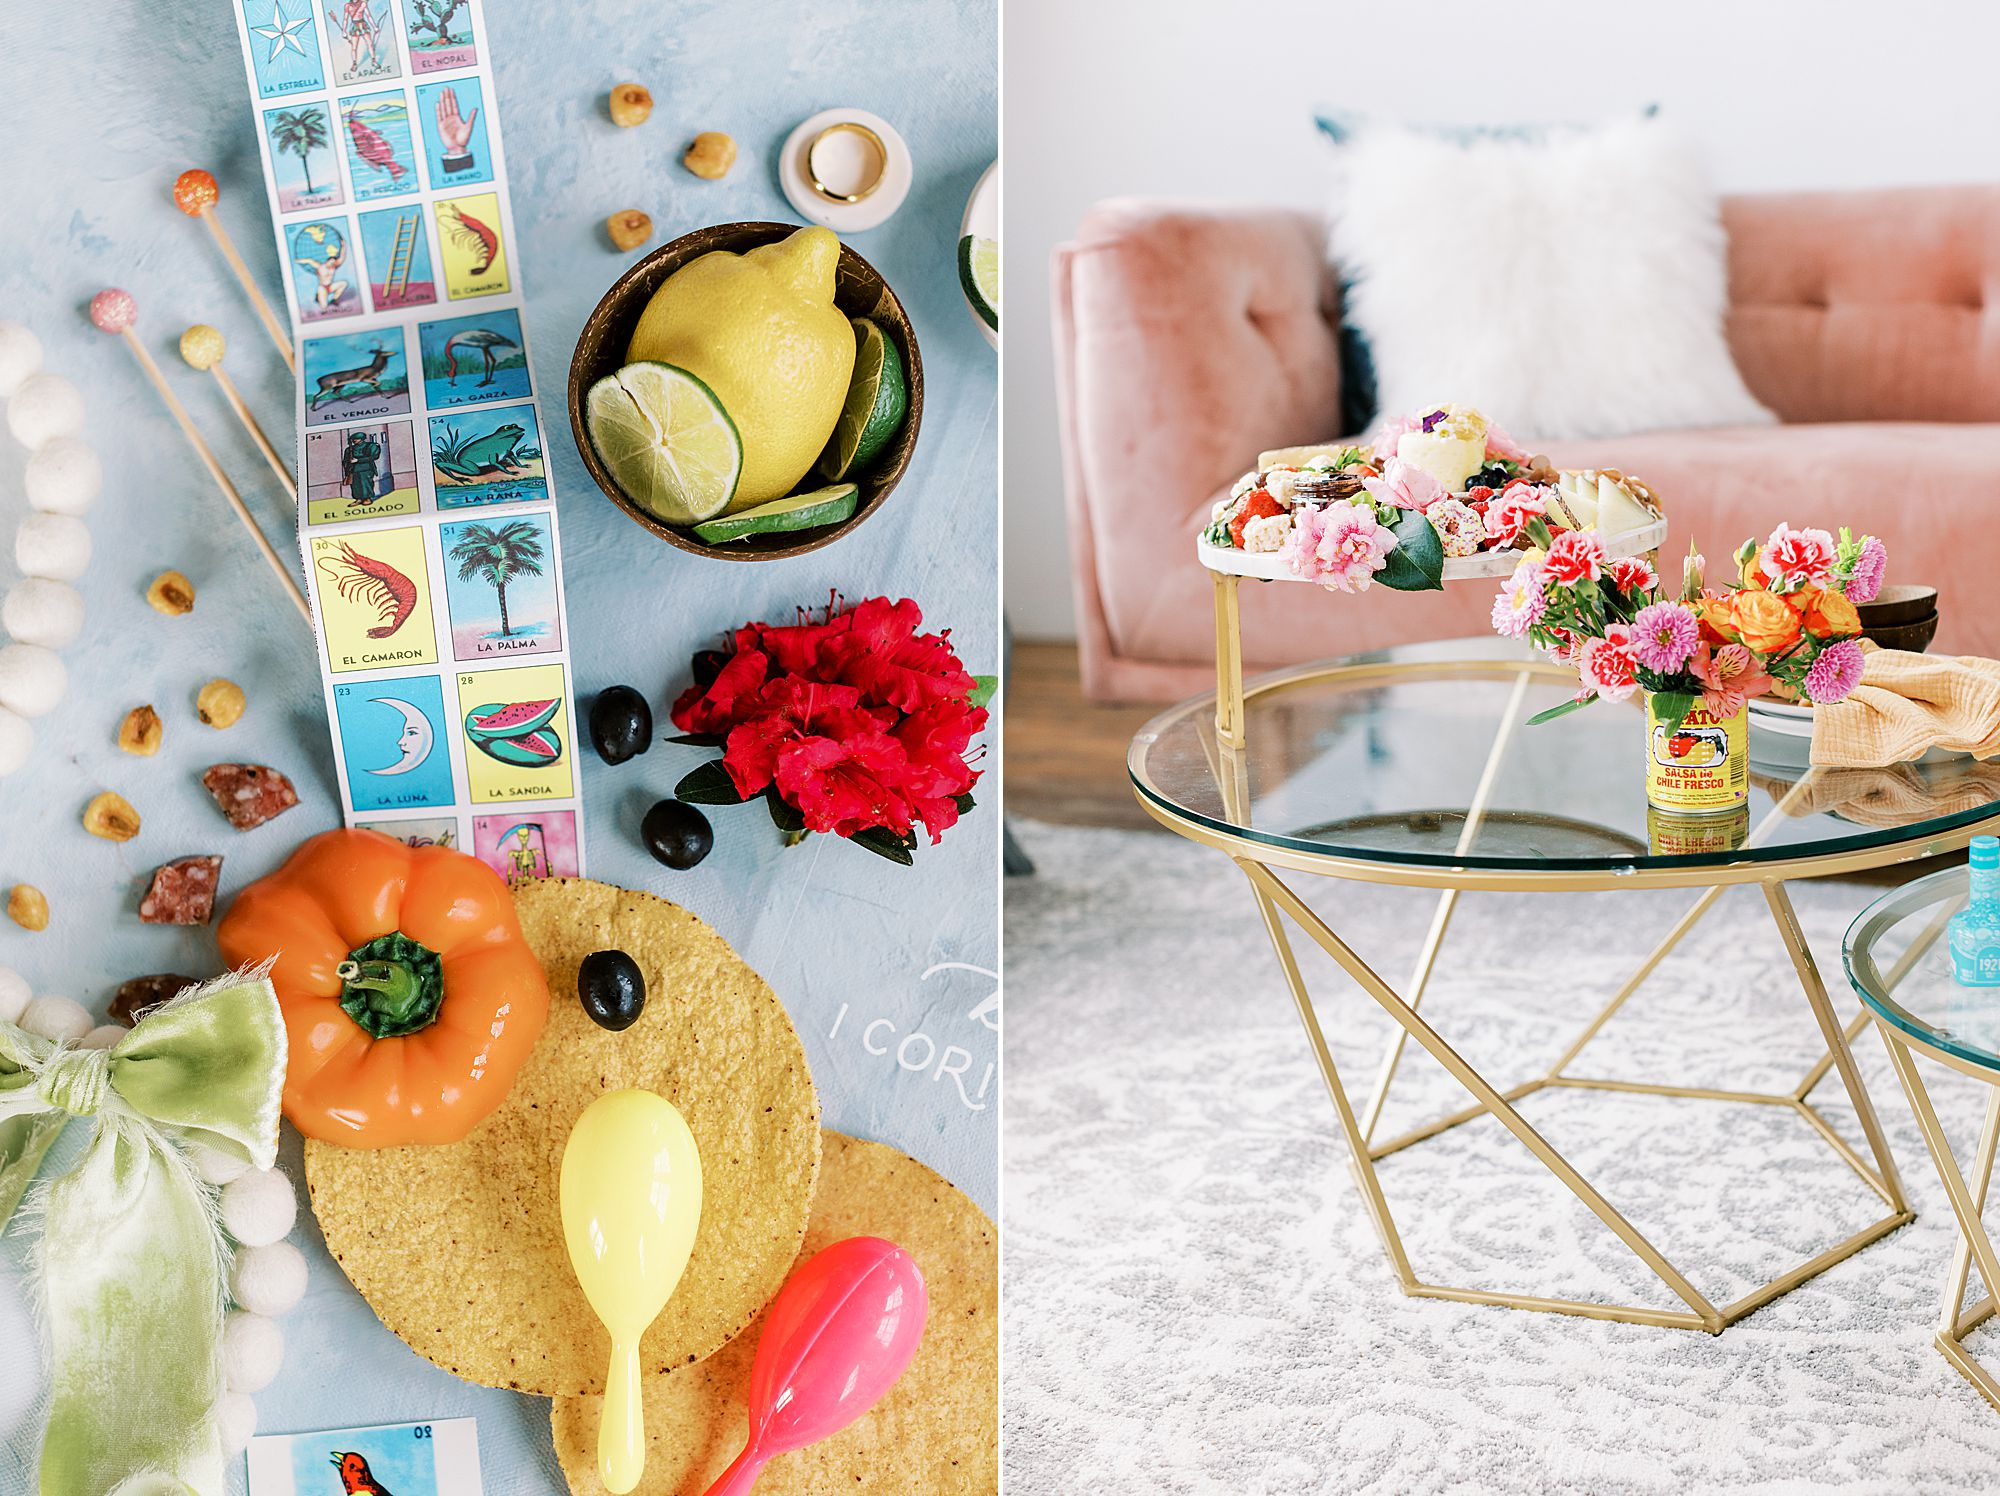 Cinco De Mayo Inspiration for Your FIesta - Party Crush Studio and Ashley Baumgartner_0040.jpg